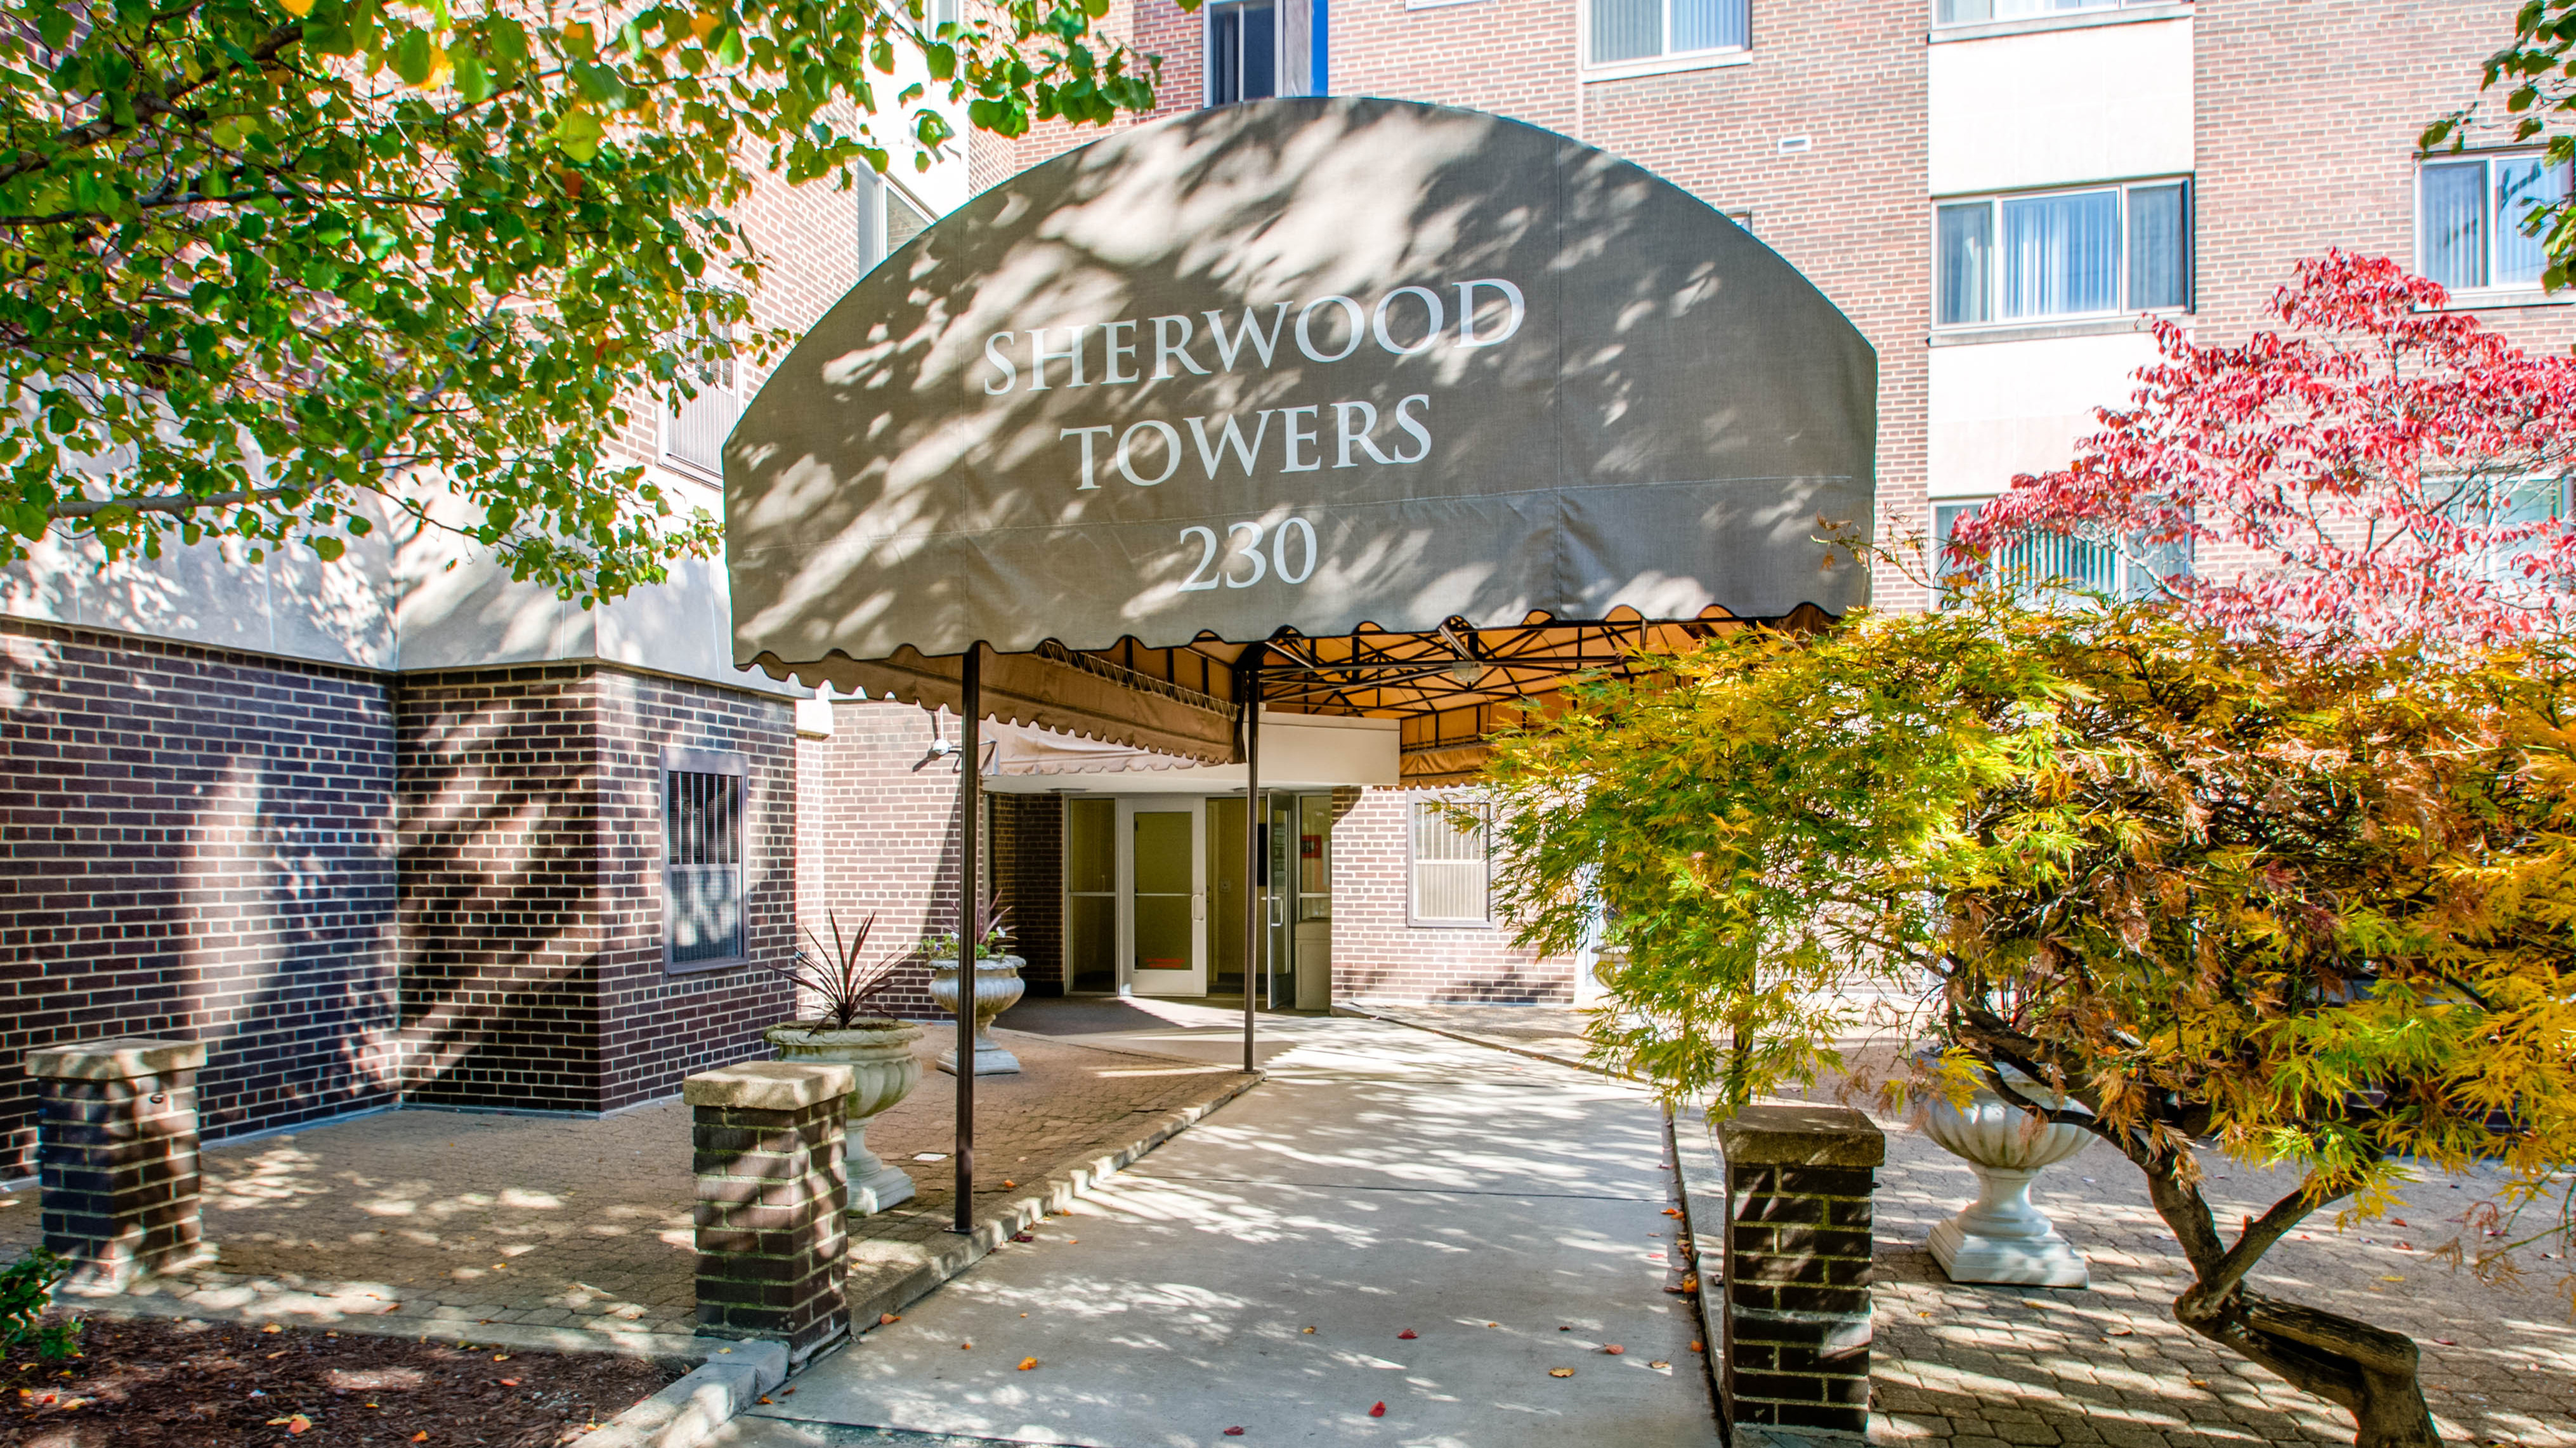 Image of Located in the Heart of North Oakland for Sherwood Towers Apartments